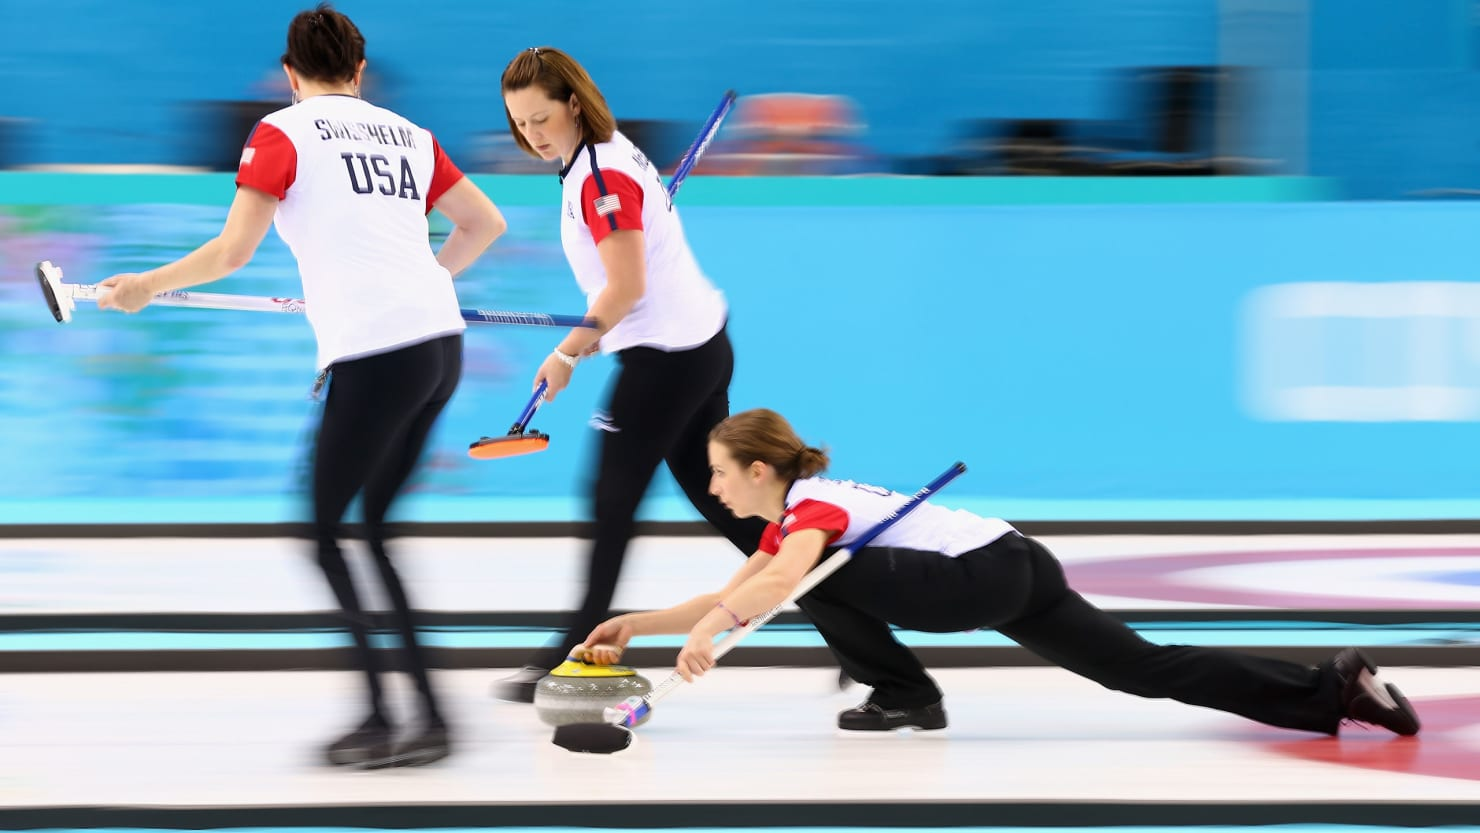 Heres How To Watch All Of The Curling Coverage A Sport Thats Basically The Cousin Of Shuffleboard